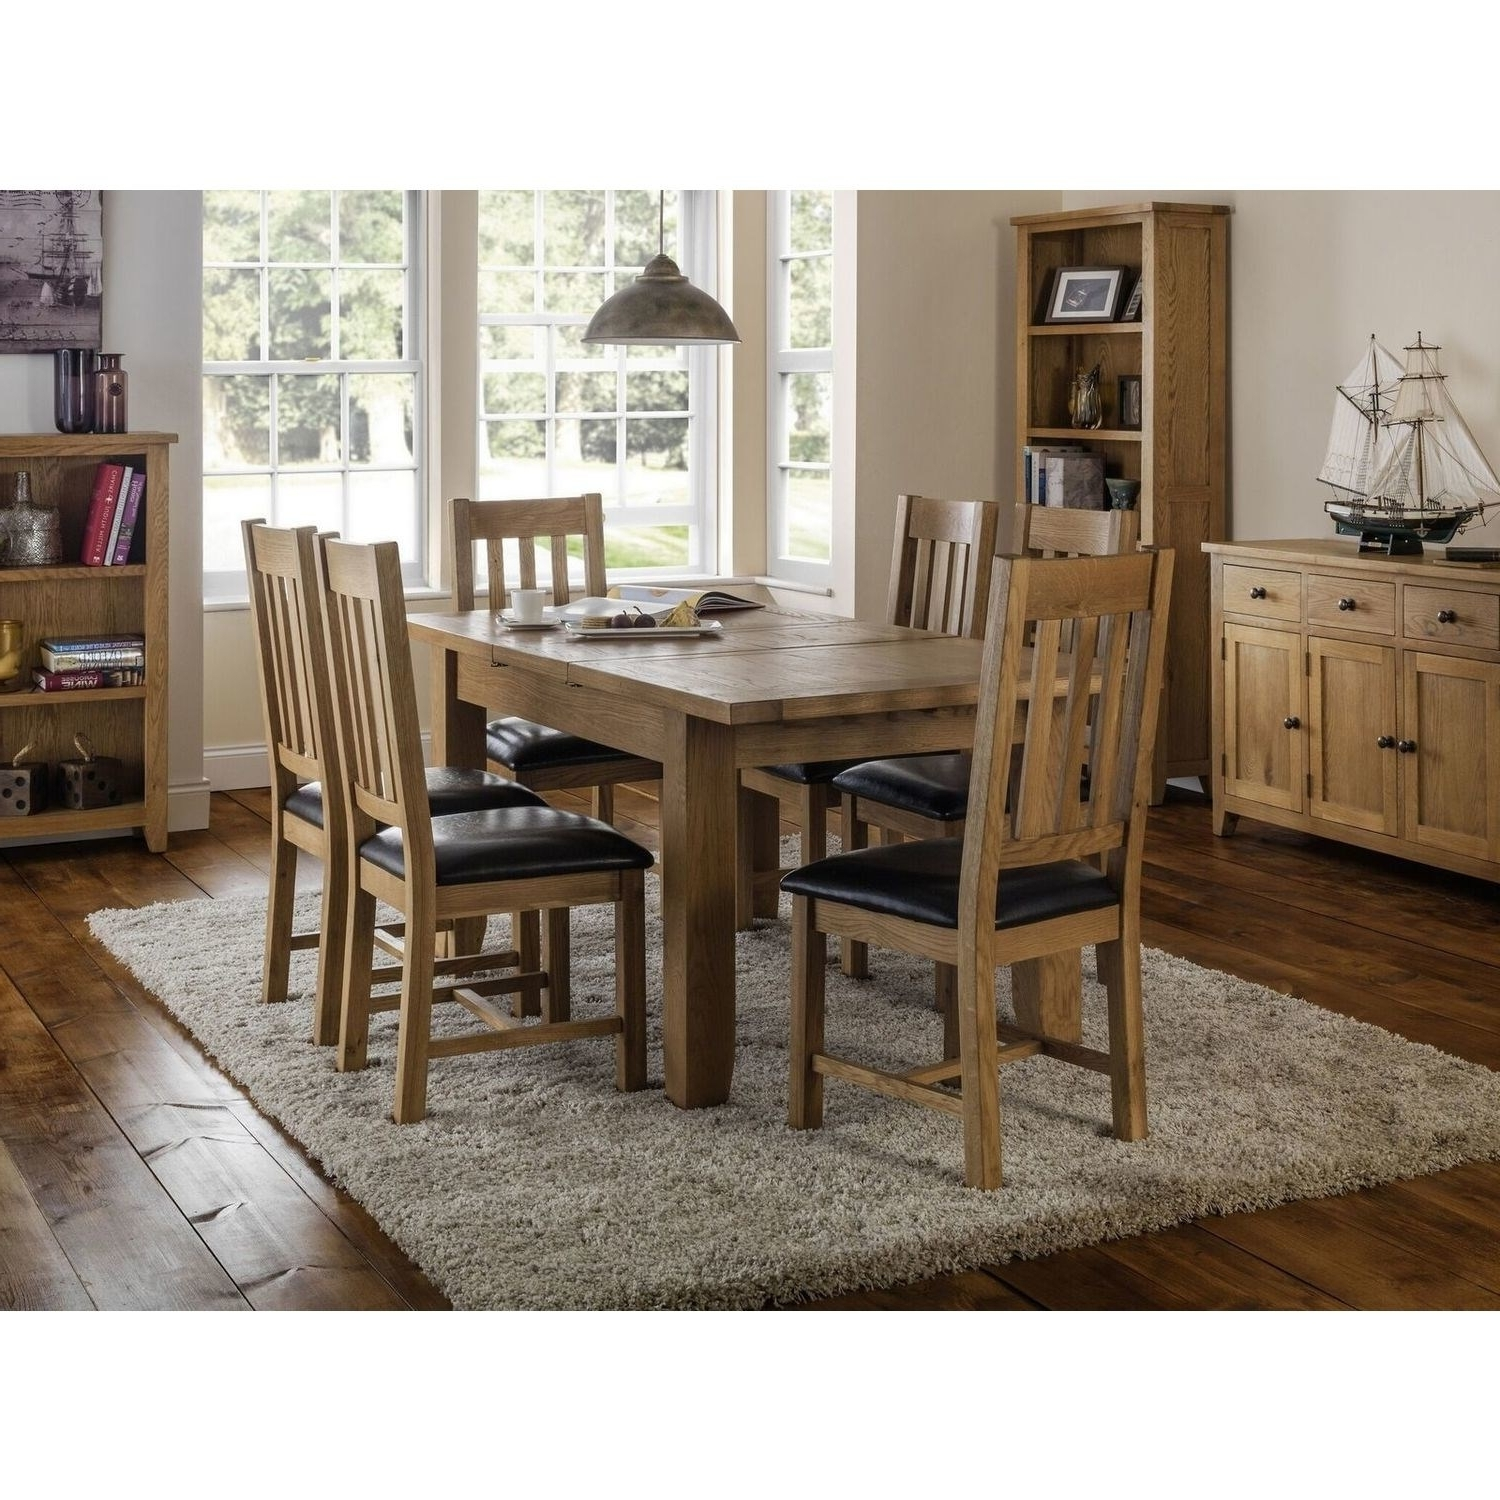 Extending Dining Table Sets in Famous Julian Bowen Astoria Extending Dining Table Set With 6 Astoria